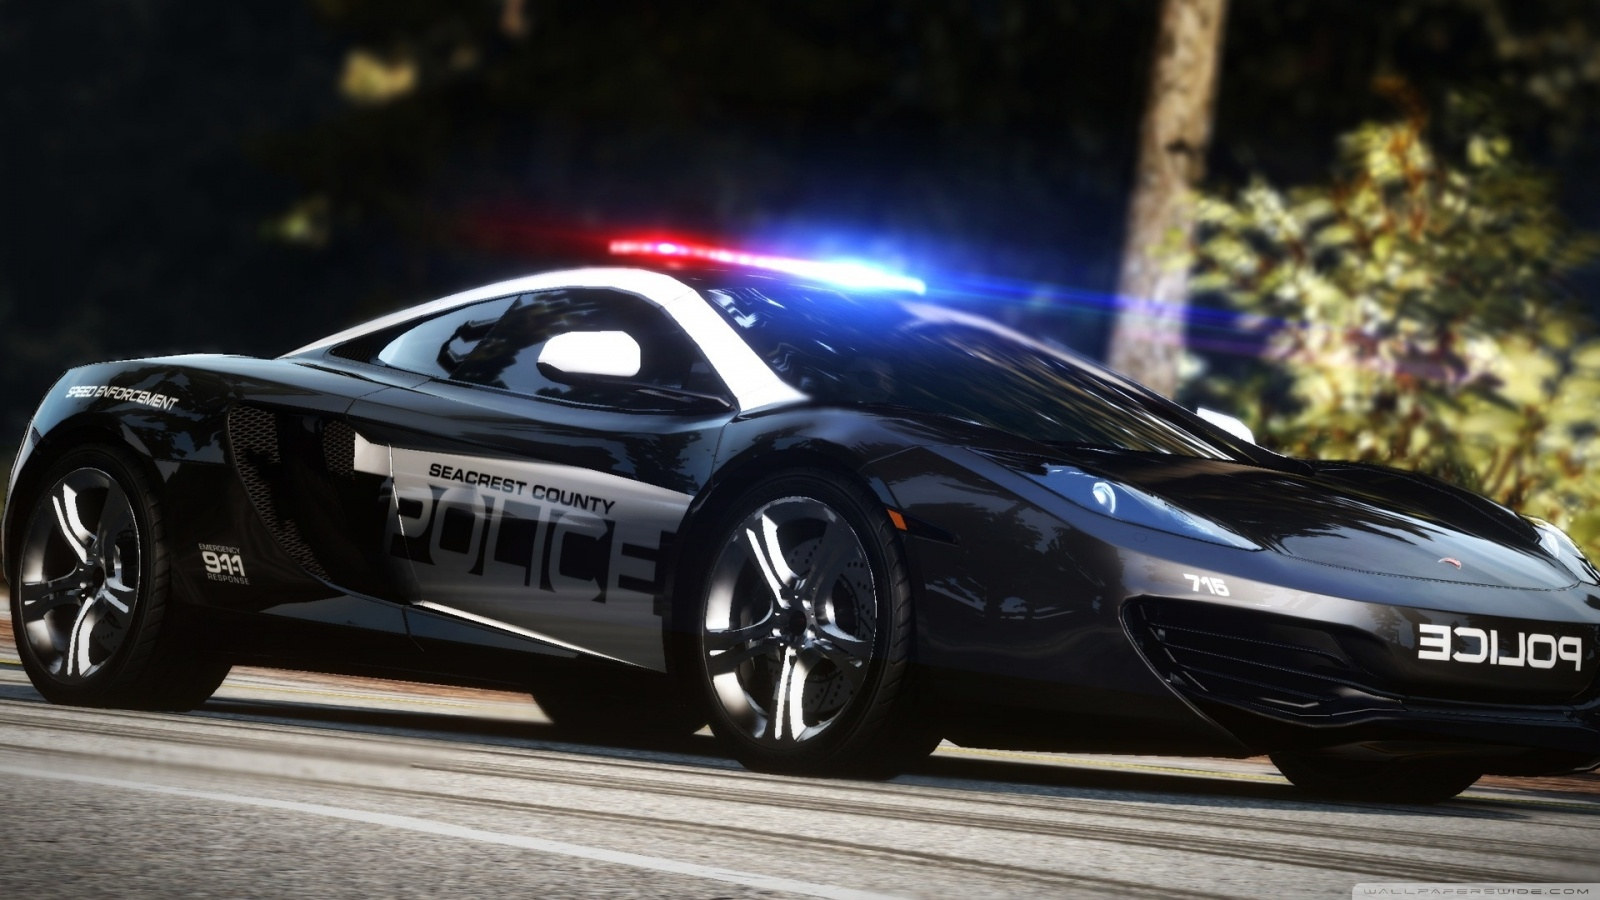 Police Cars HD Wallpapers Backgrounds 1600x900